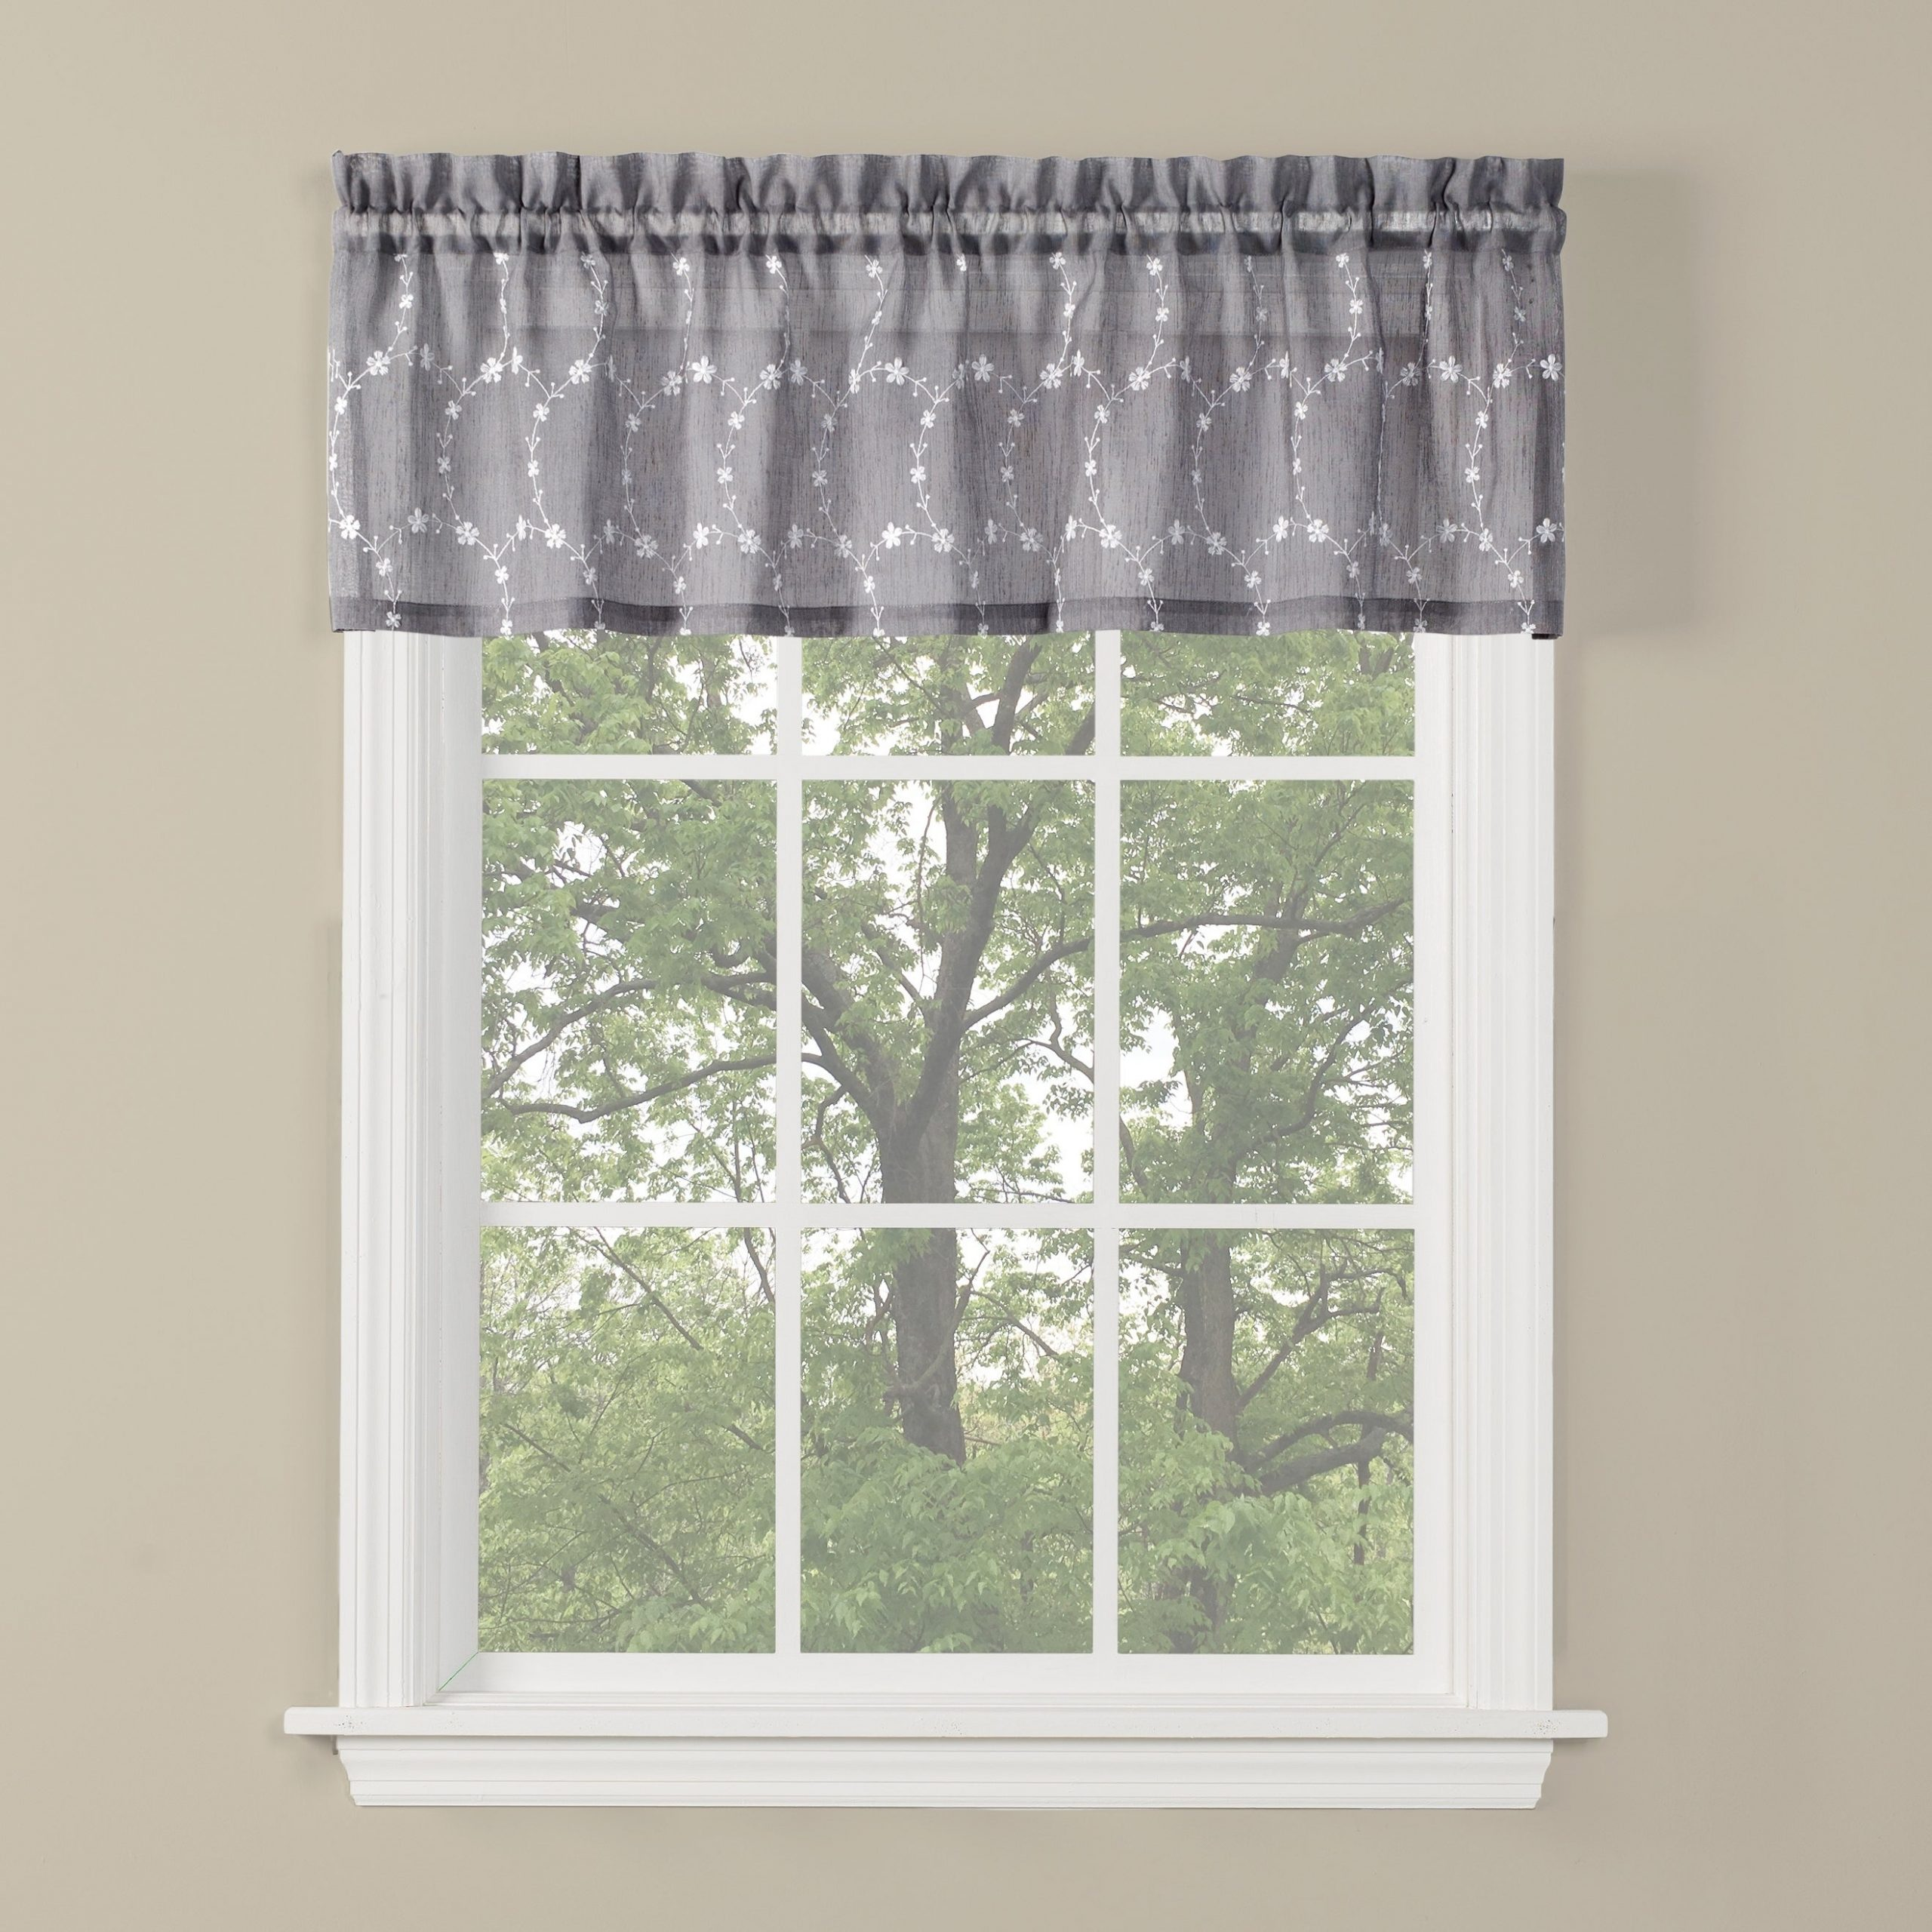 Skl Home Briarwood 13 Inch Valance In Dove Gray In Cumberland Tier Pairs In Dove Gray (View 10 of 20)